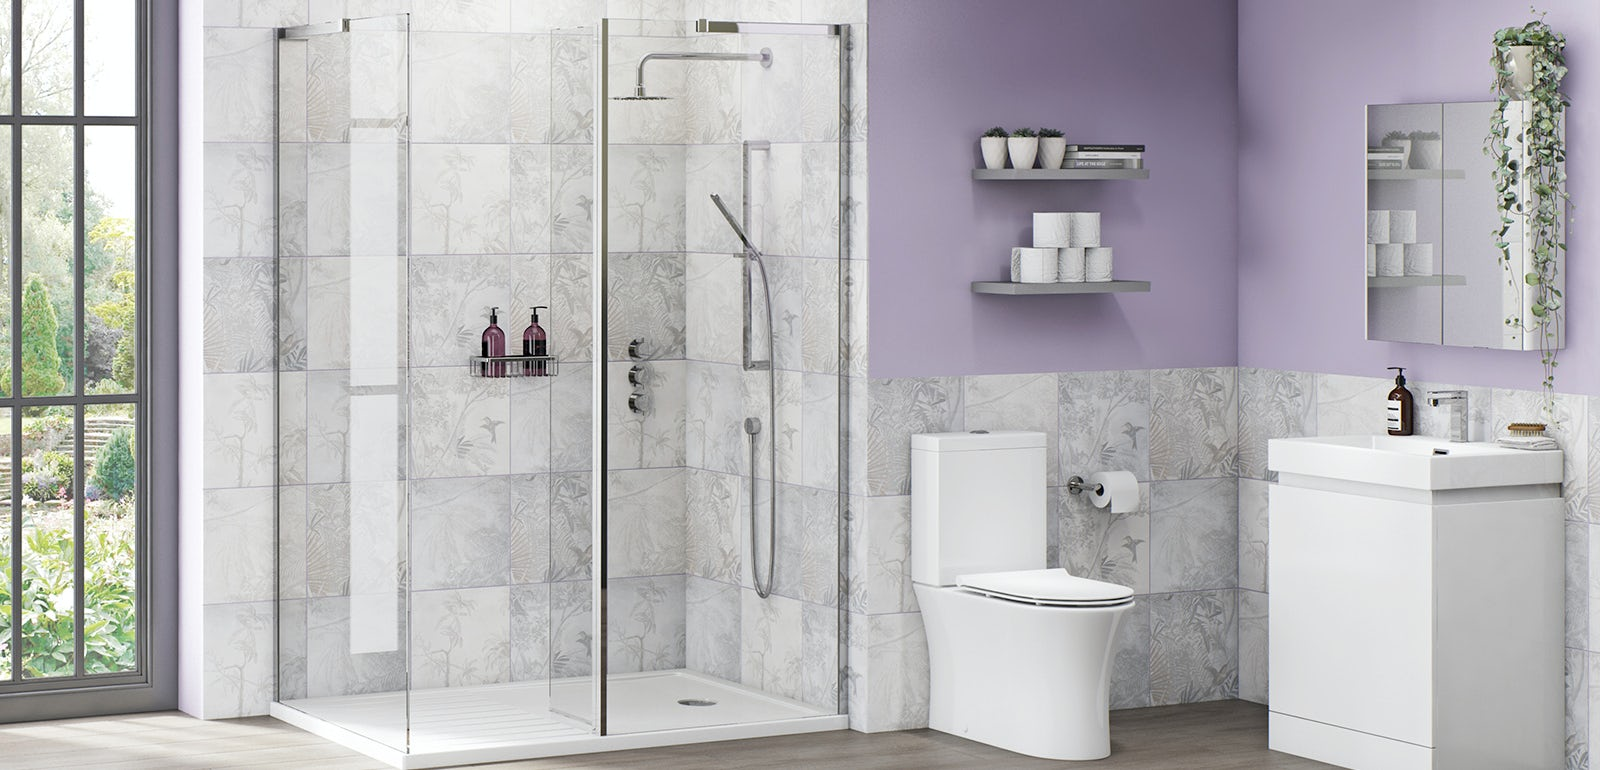 Bathroom suite buying guide